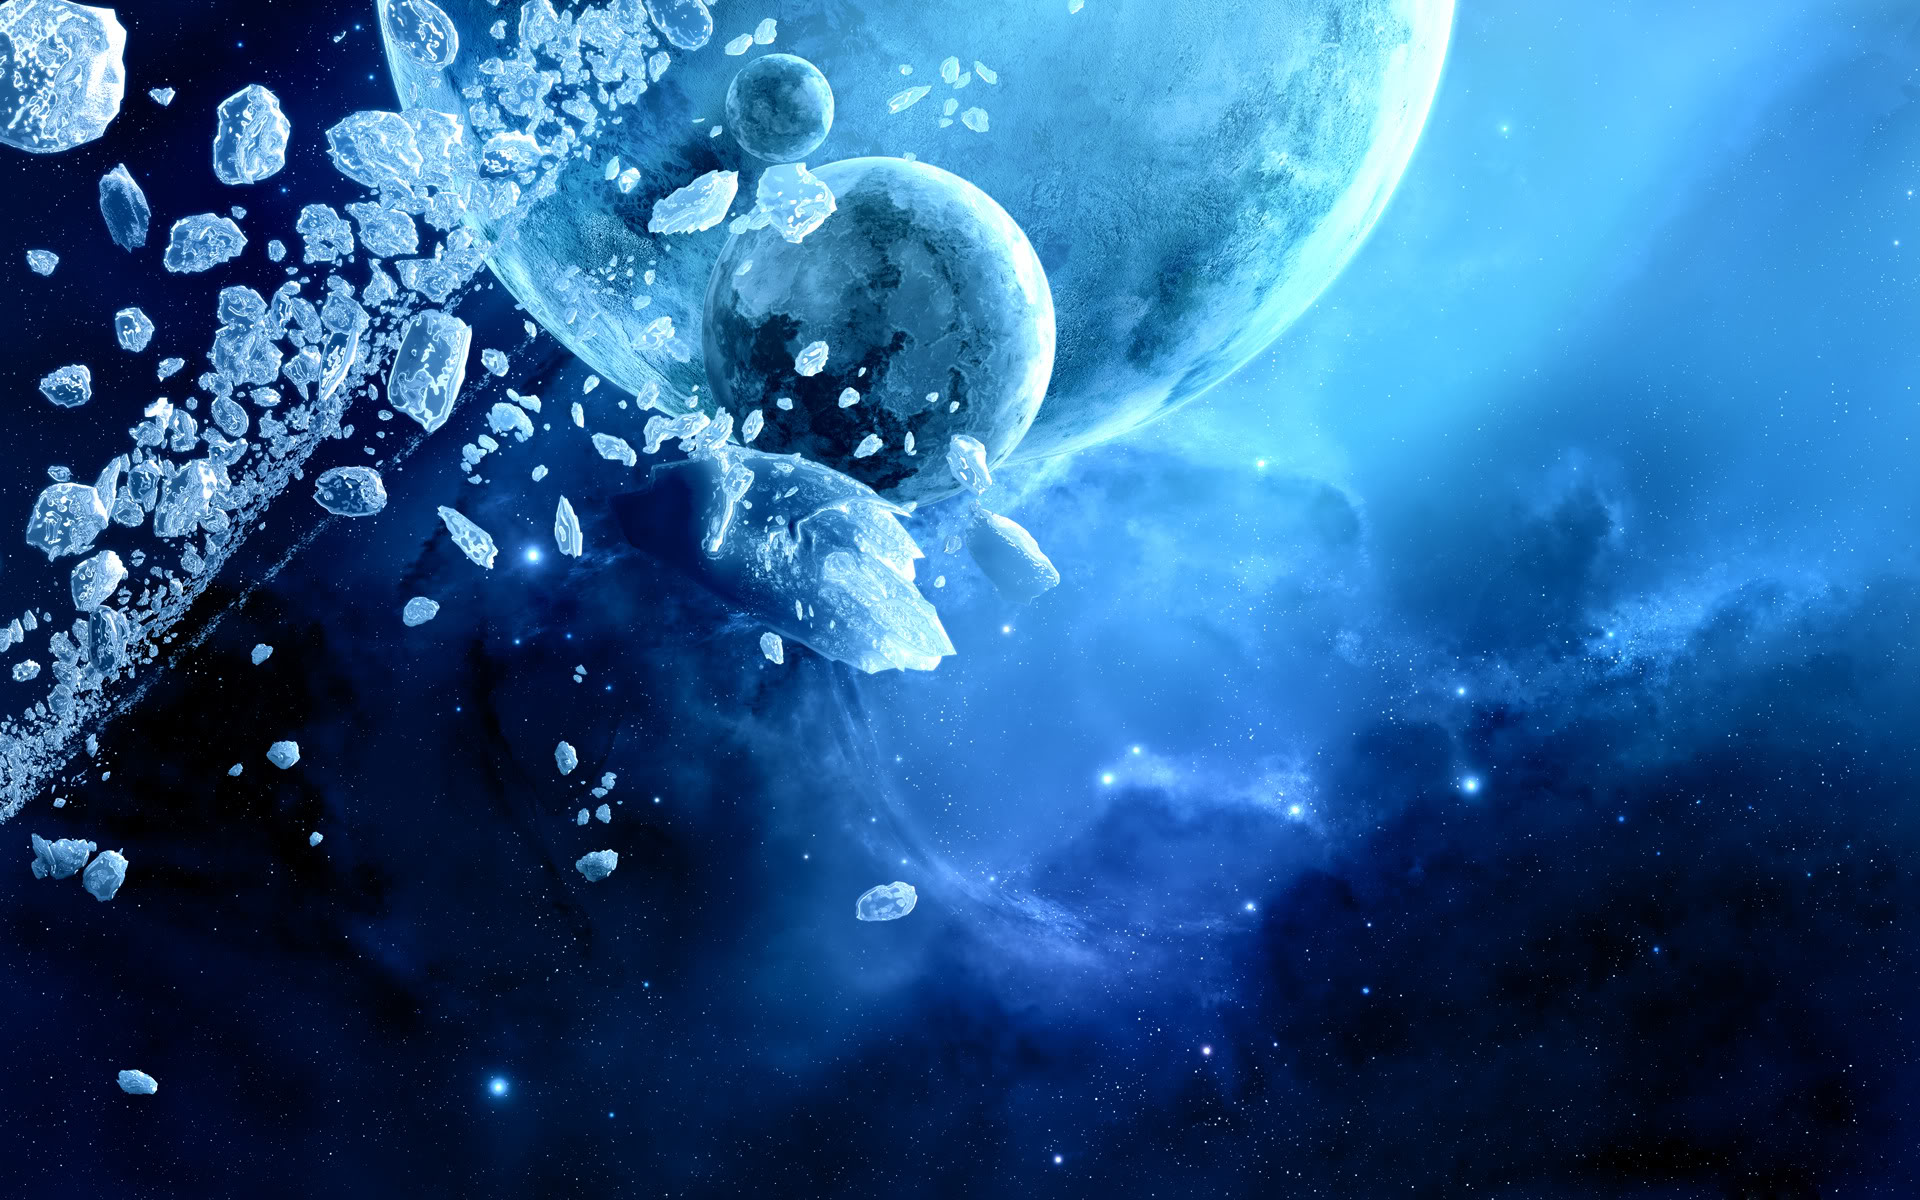 Download High quality Glacialis HD Science Fiction (Sci-fi) wallpaper ...